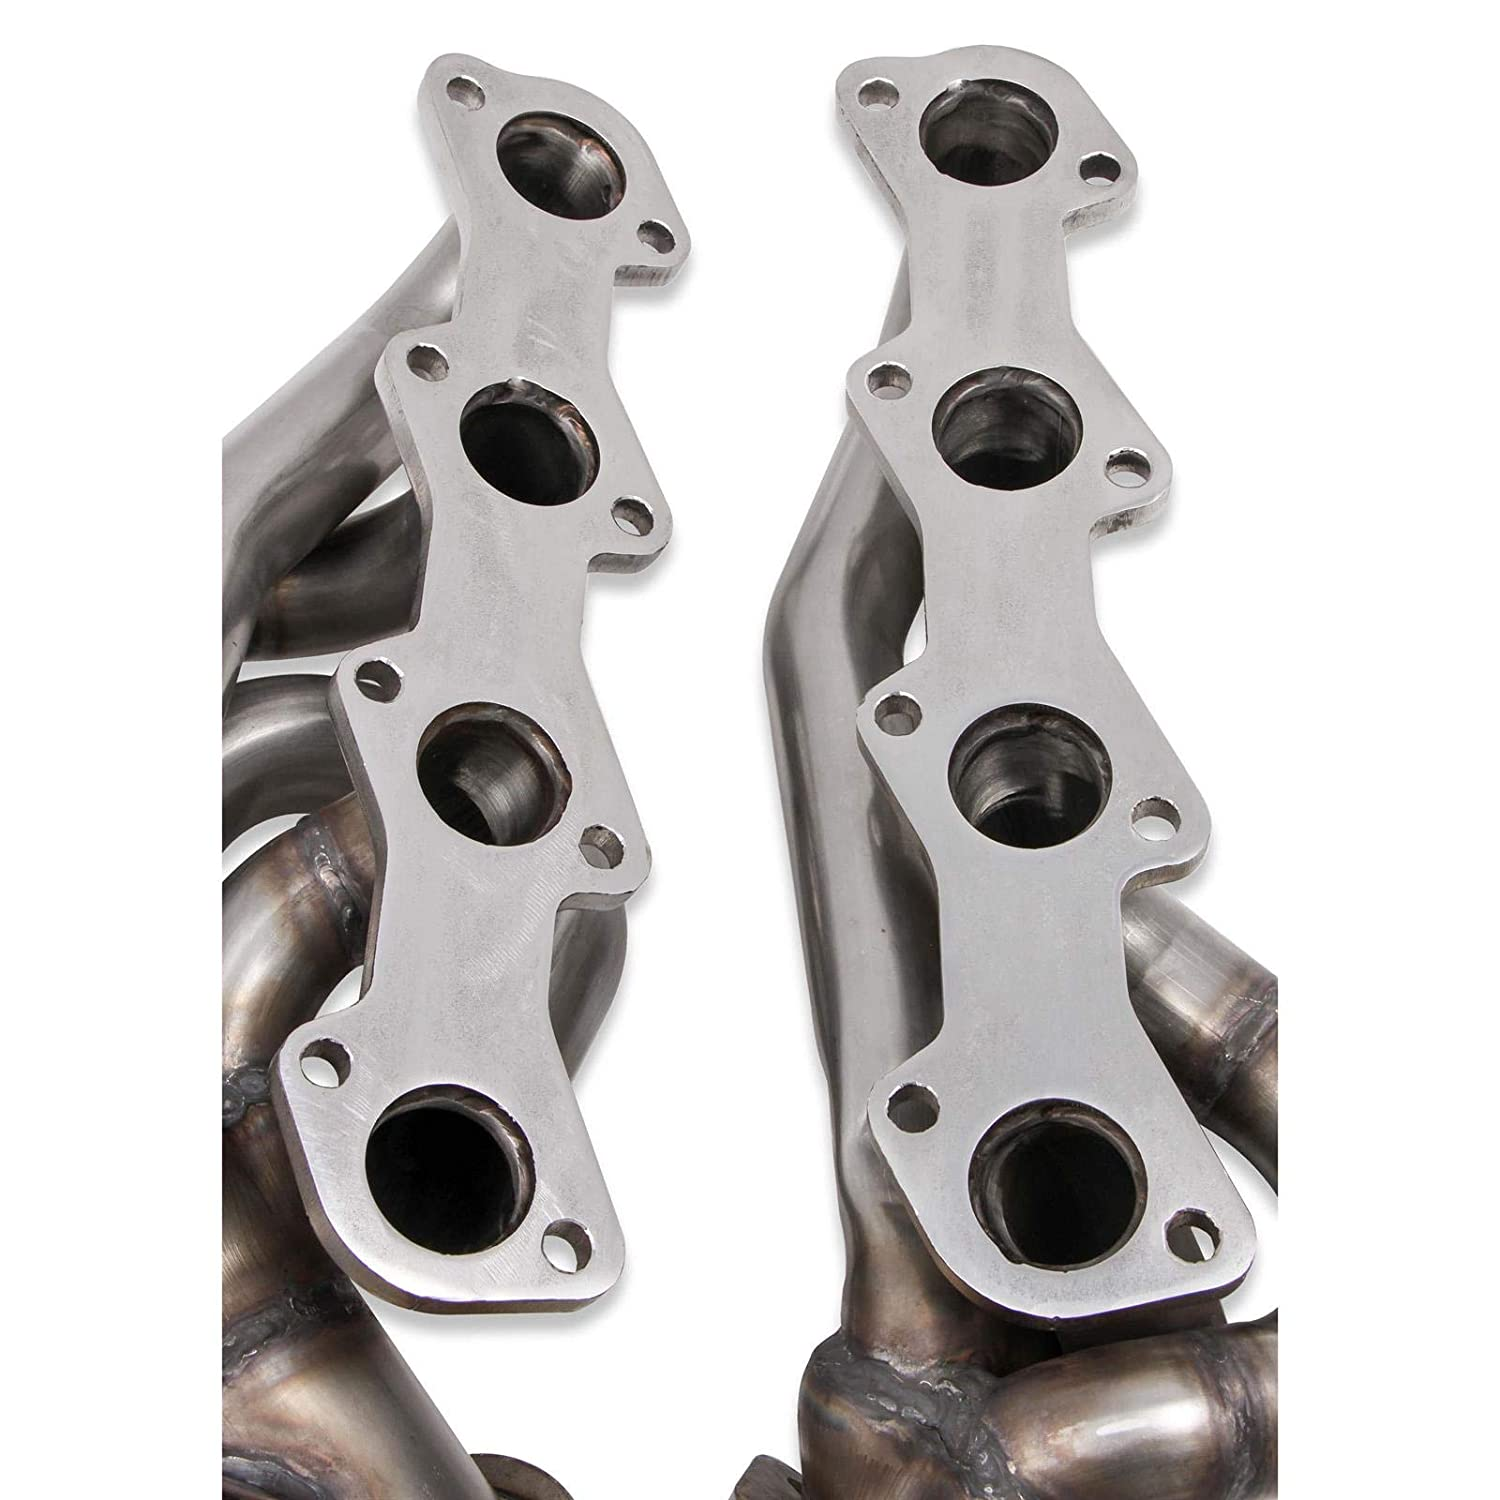 Flowtech Ford F-150 4.6L V8 304 Stainless Steel Shorty Headers